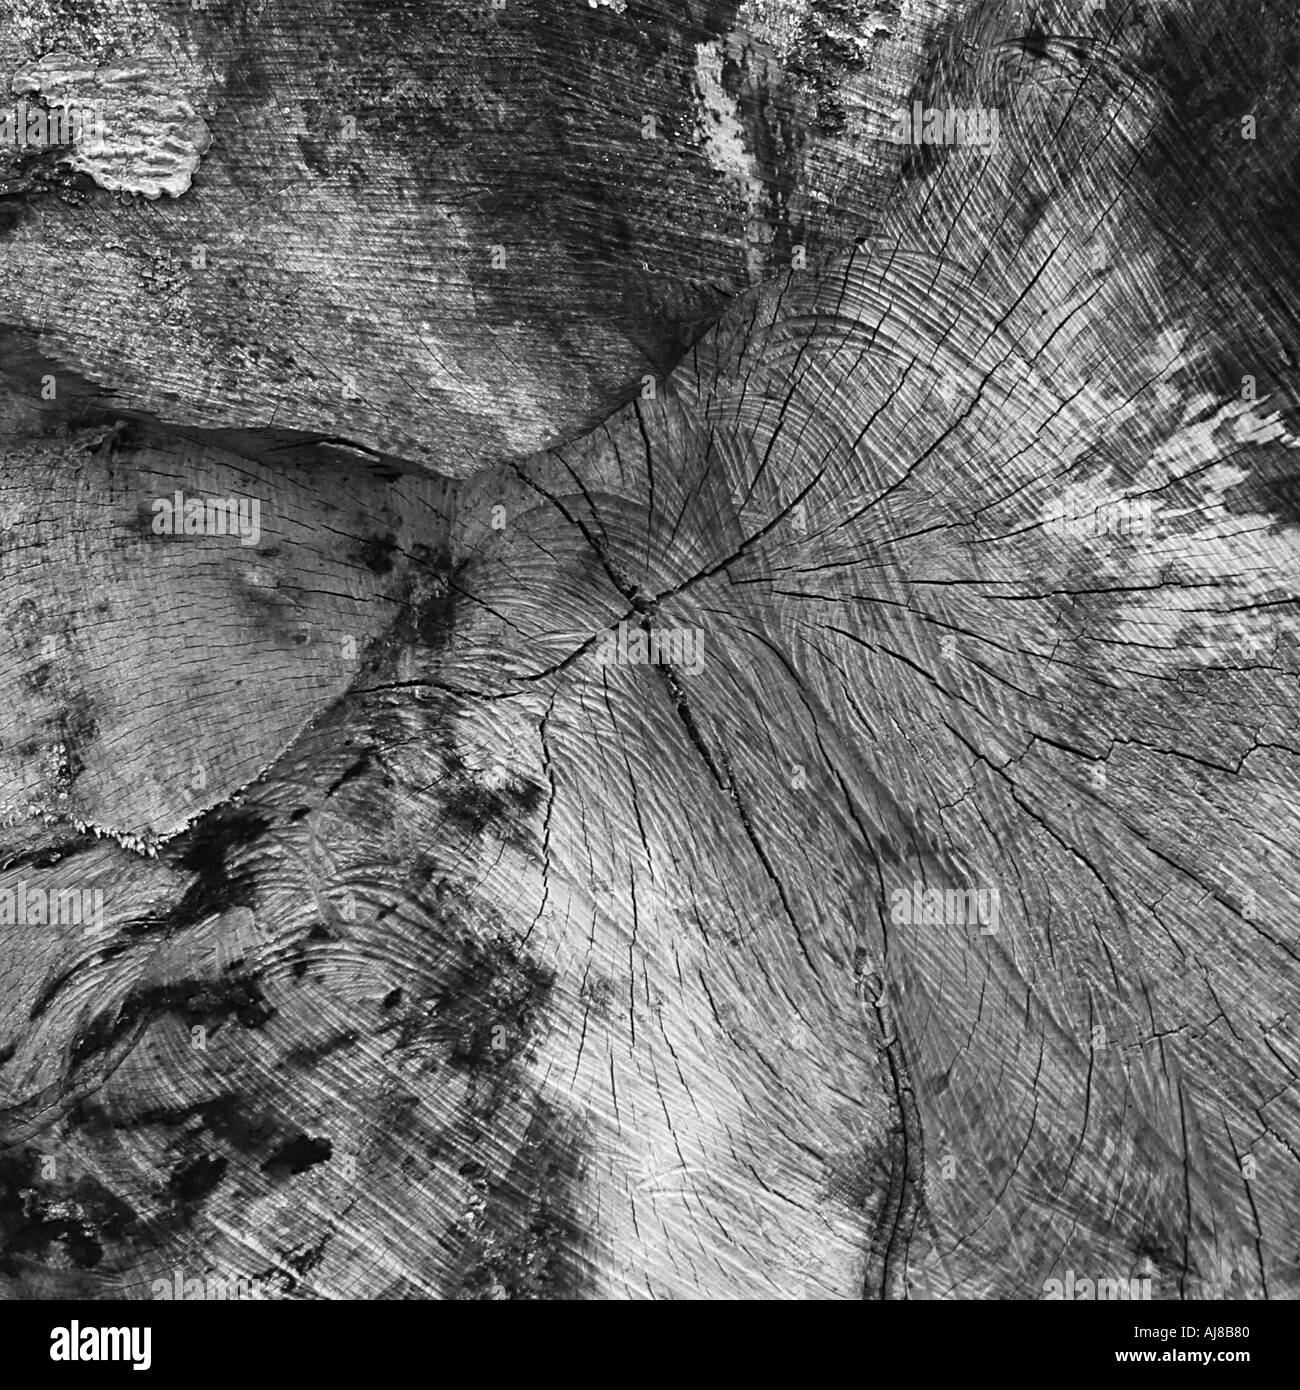 Log section - Stock Image